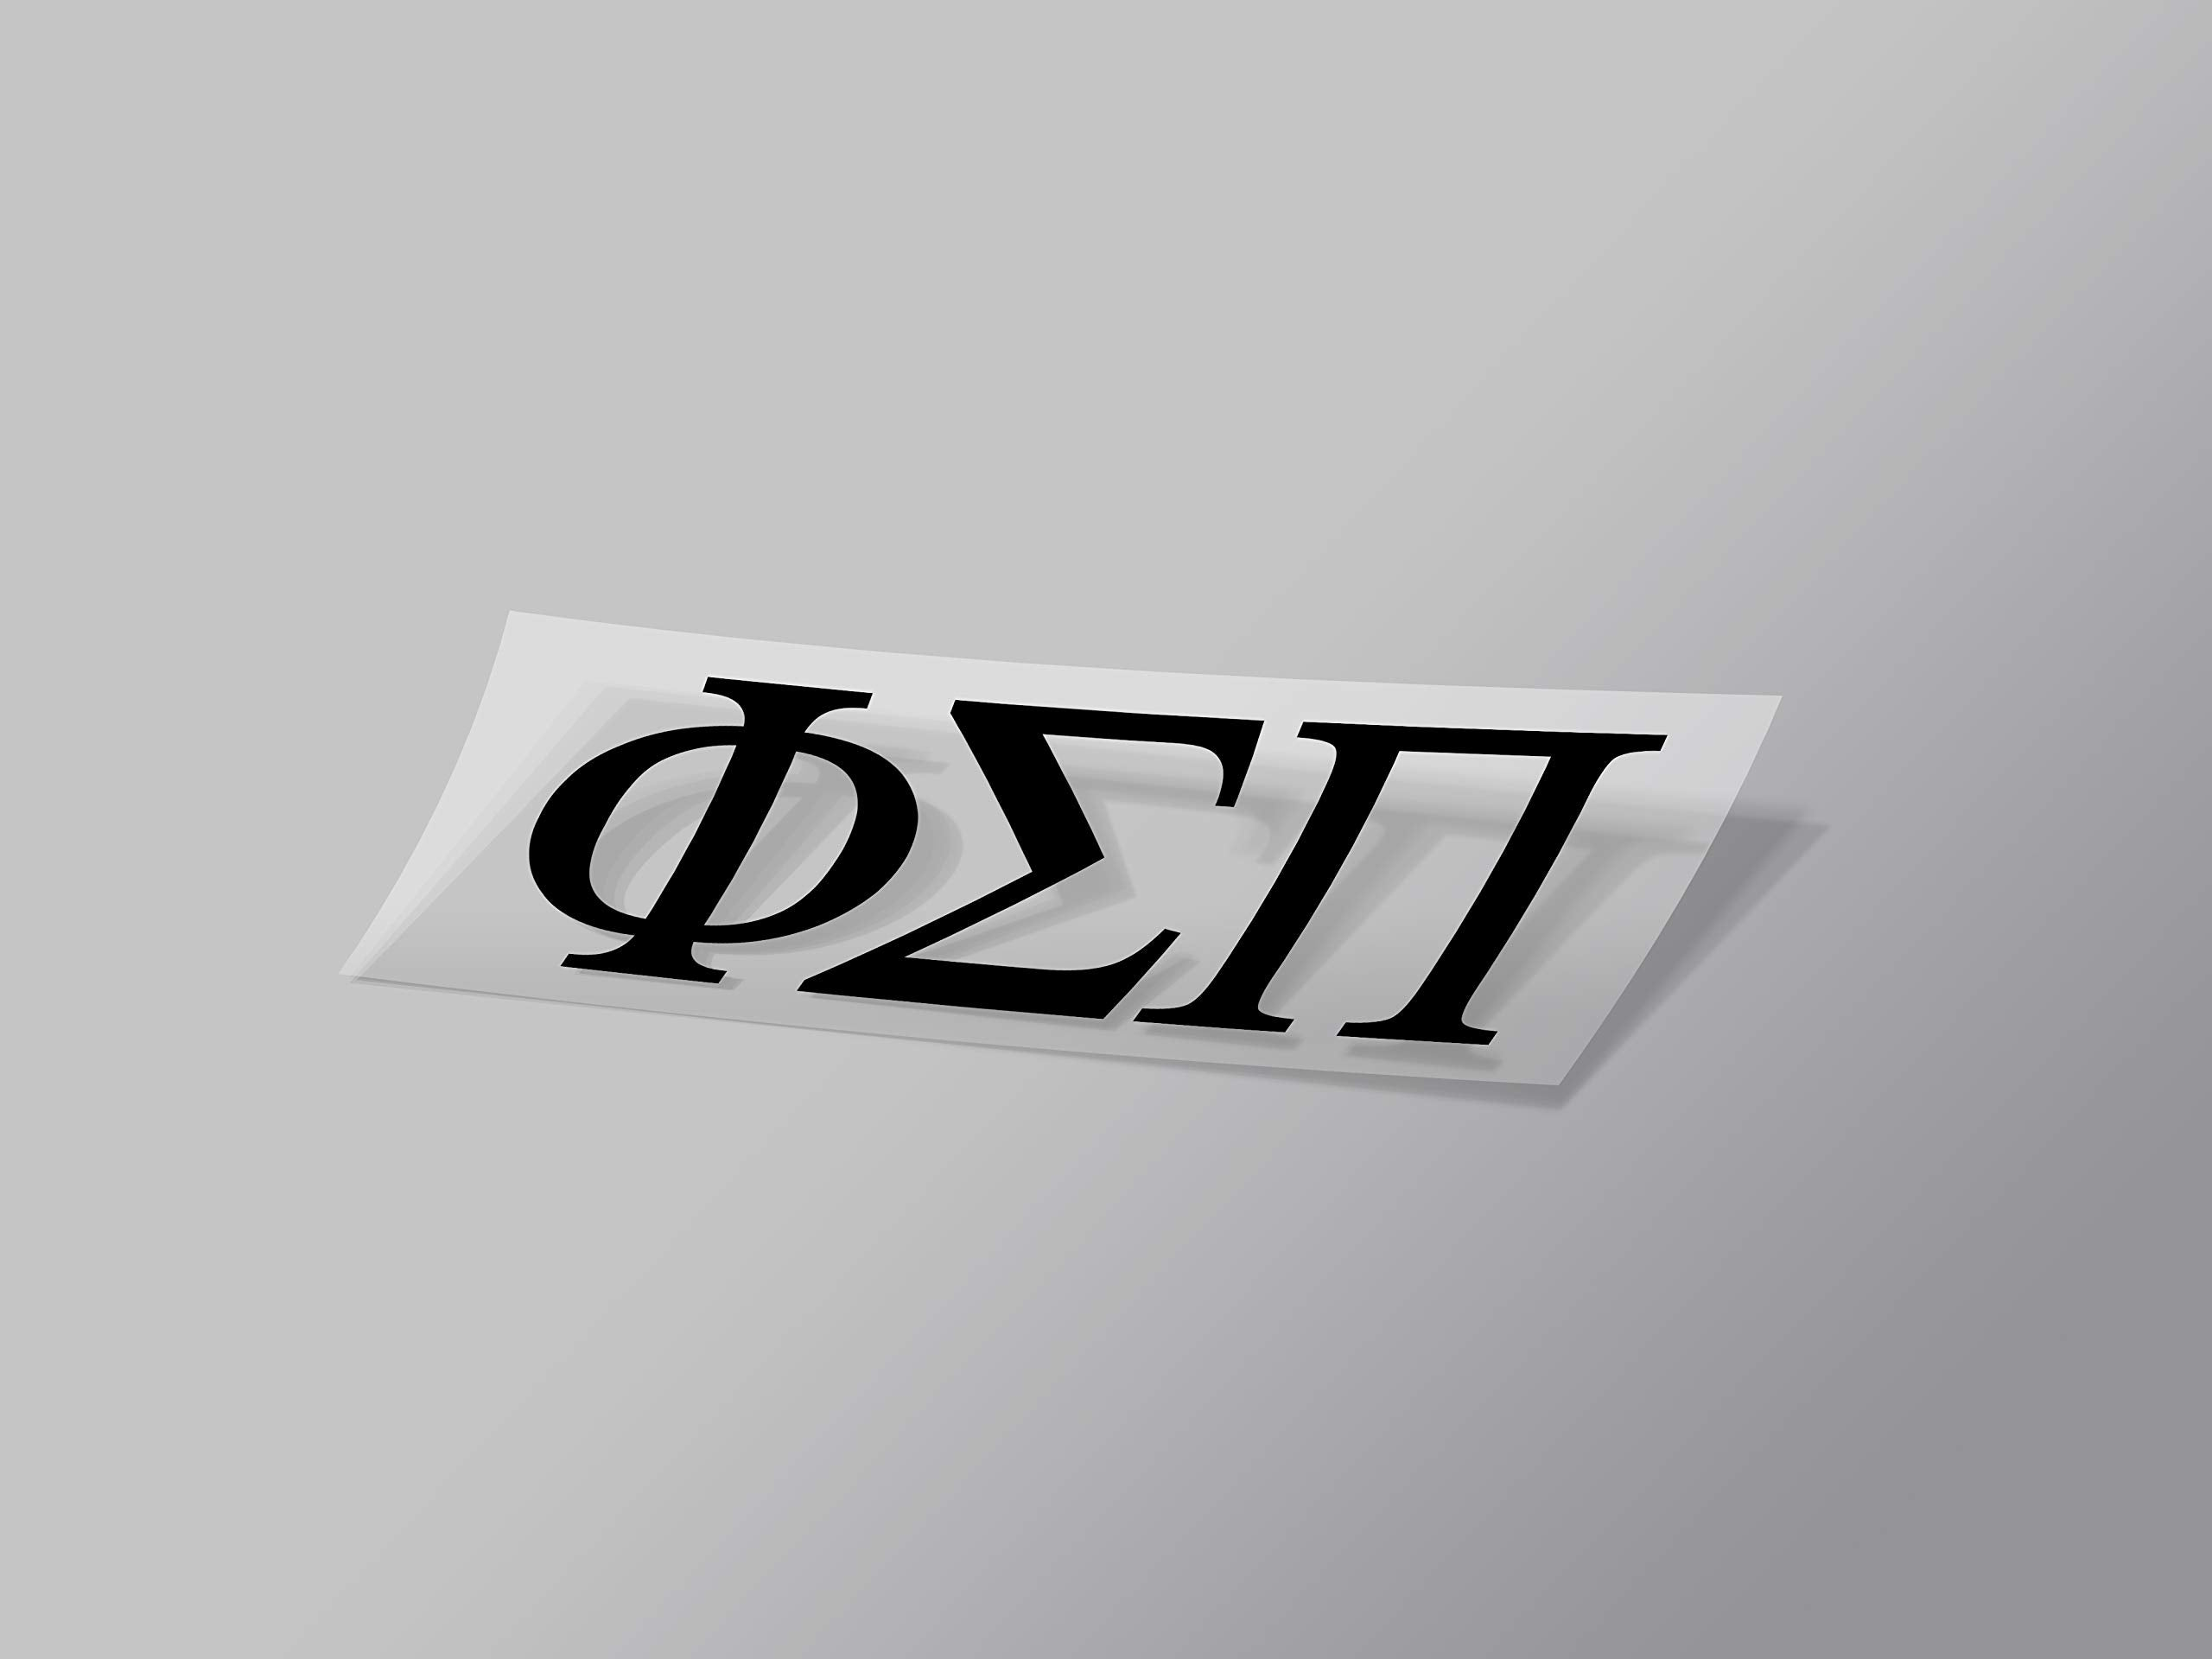 "Phi Sigma Sigma Sticker Greek Sorority Decal for Car, Laptop, Windows, Officially Licensed Product, Monogram Design 2.5"" Tall - Black"